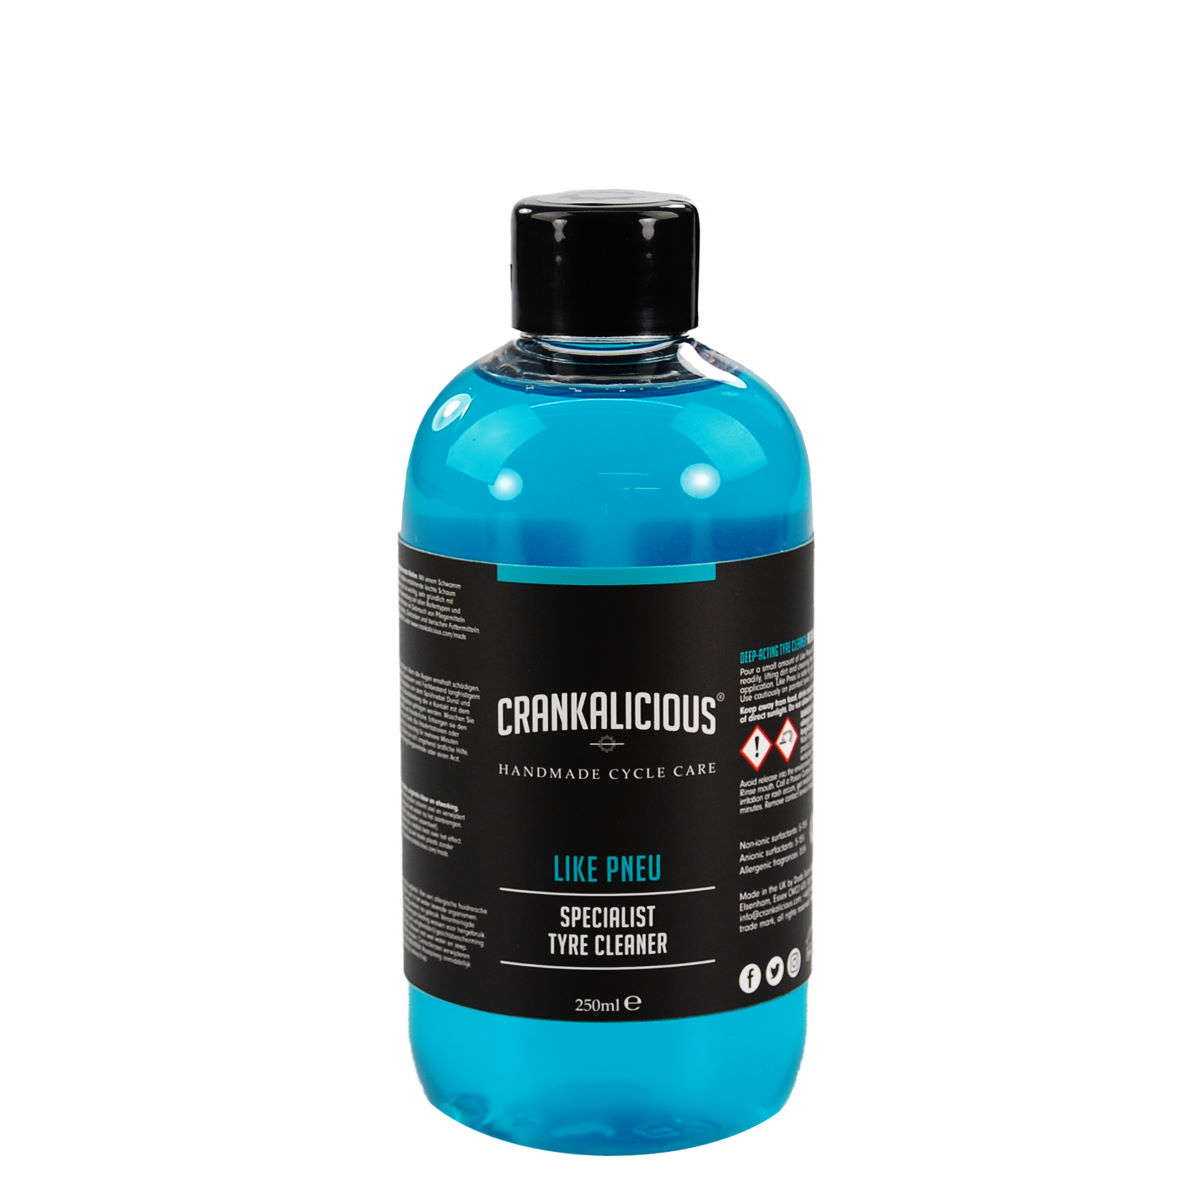 Crankalicious Like Pneu 250ml Tyre Cleaner  One Size - Productos de limpieza